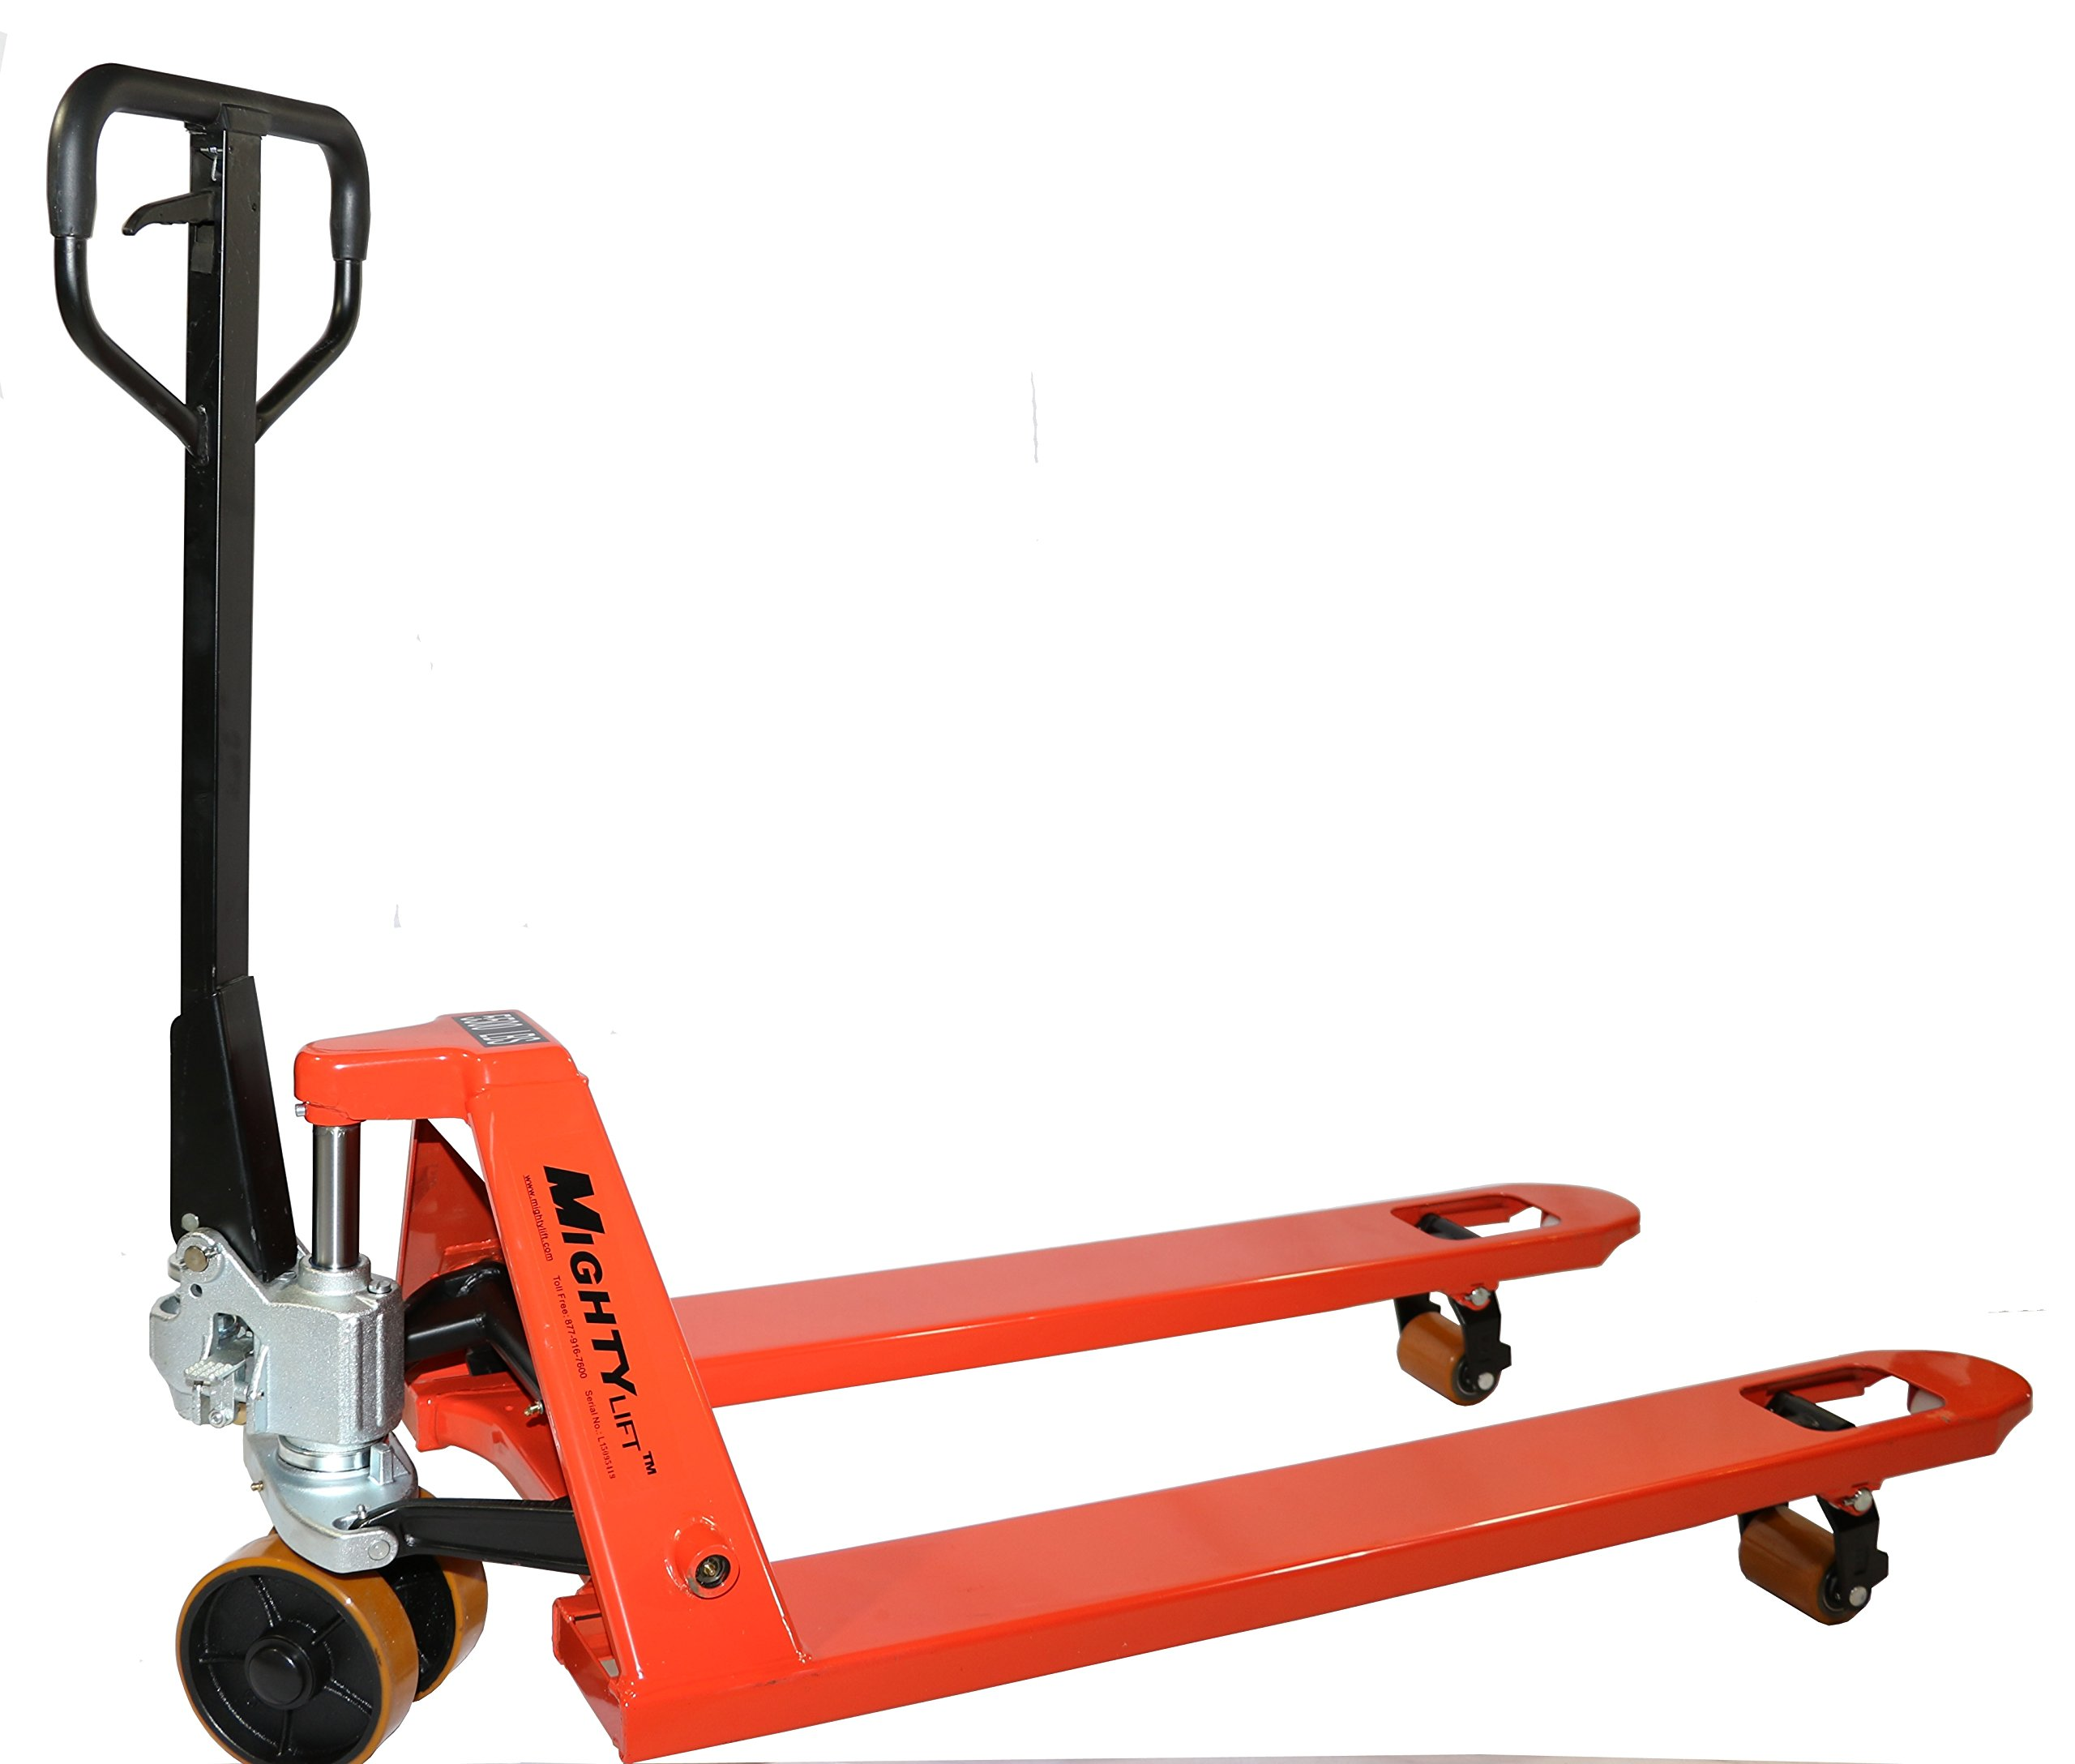 Mighty Lift ML55L-2 Heavy Duty Pallet Jack Truck, Wheels: super Polyurethane on Steel., 50'' Height, 27'' width, 48'' Length, 5500 lbs. Load Capacity, Orange